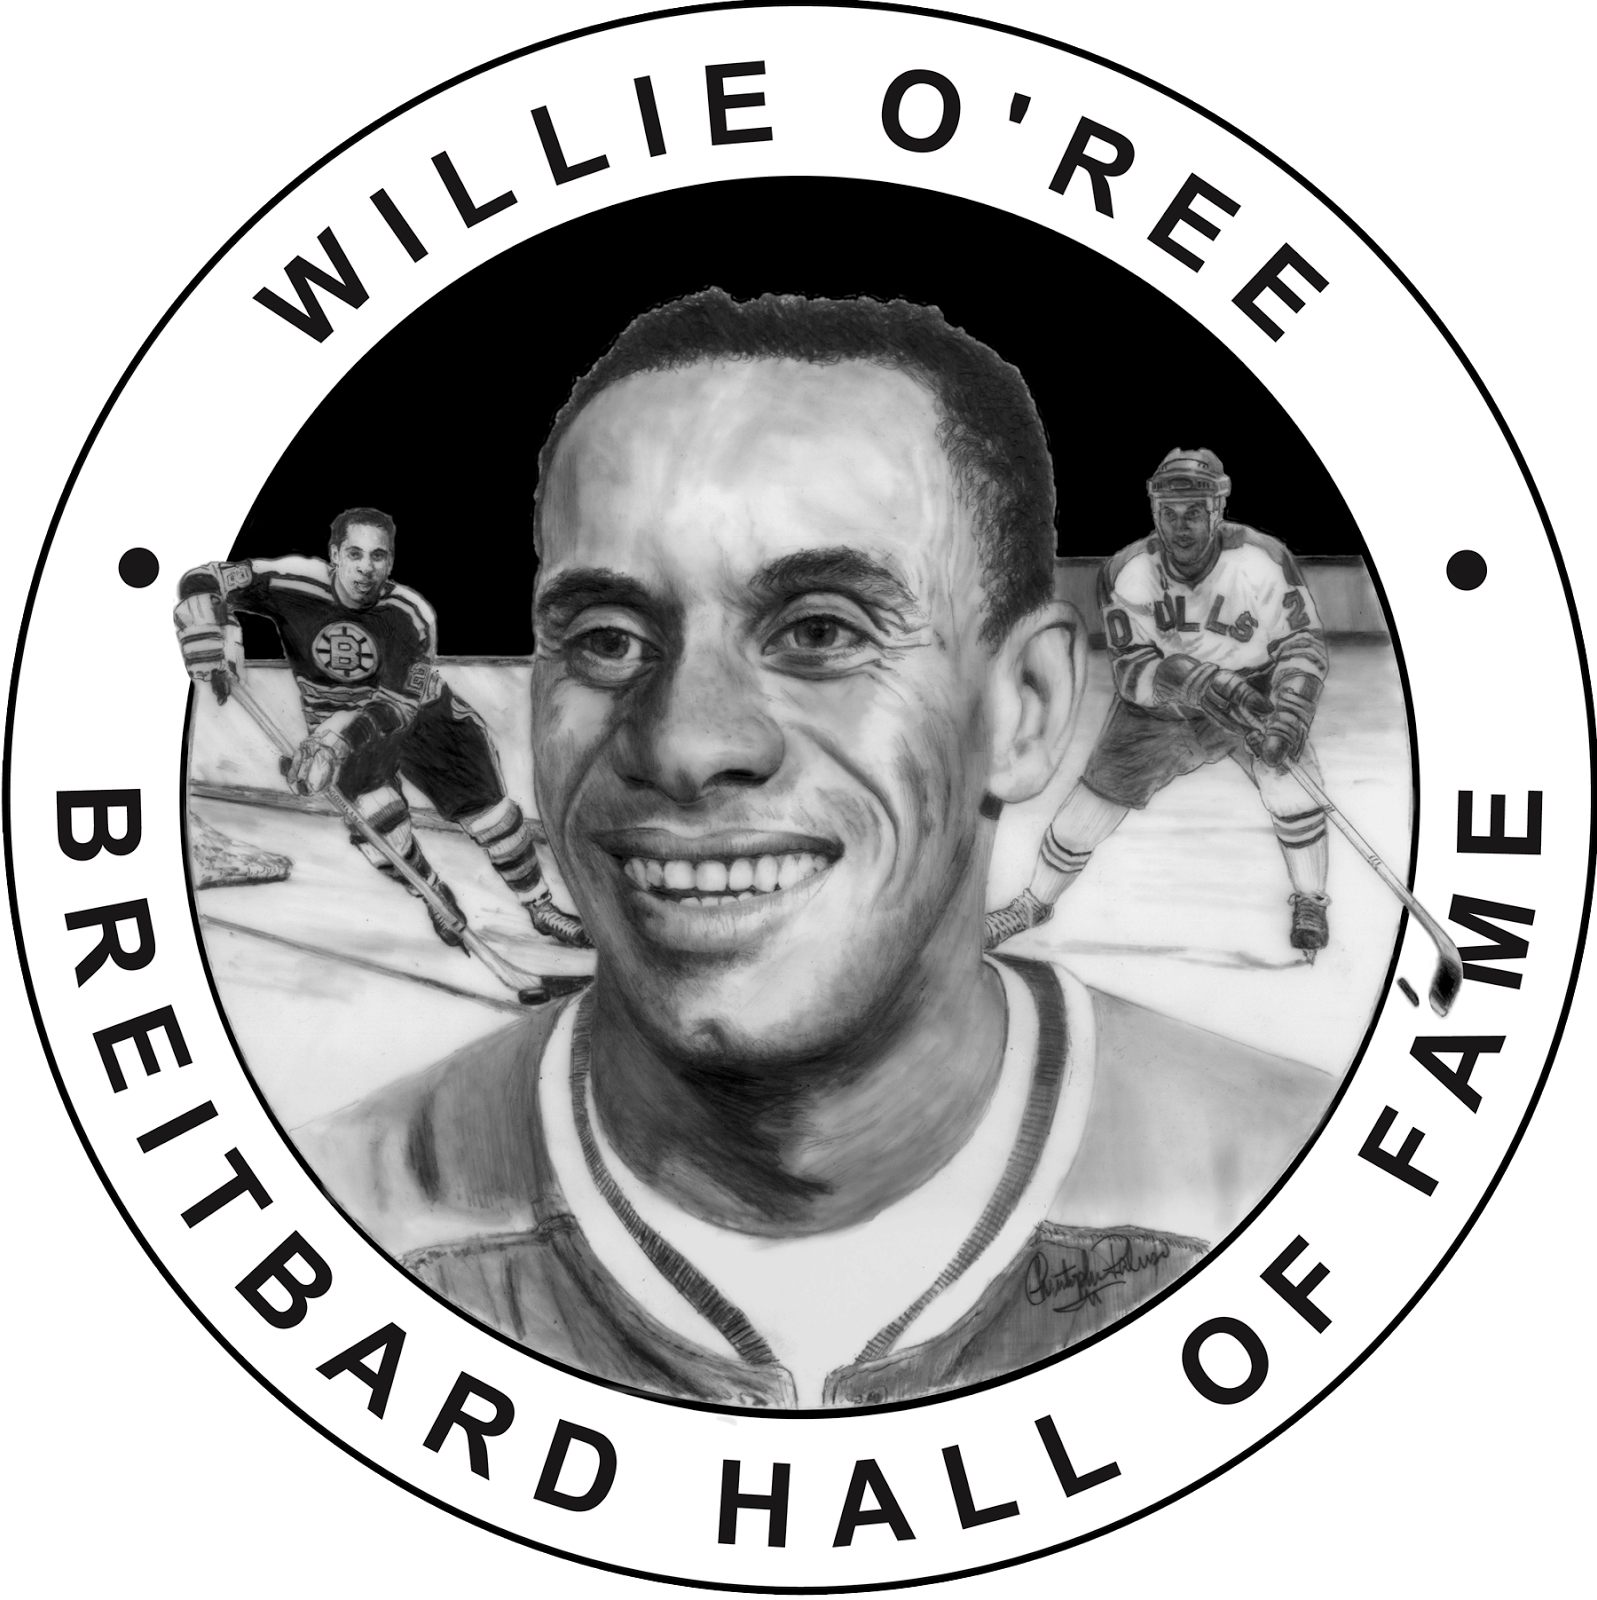 willie o ree and his famous quotes The autobiography of willie o'ree : hockey's black pioneer (nhl)  if you are  studying human rights or slavery this is a great account to share with your  children  warning: the n word is included, as a quotation as historical fact,  which.